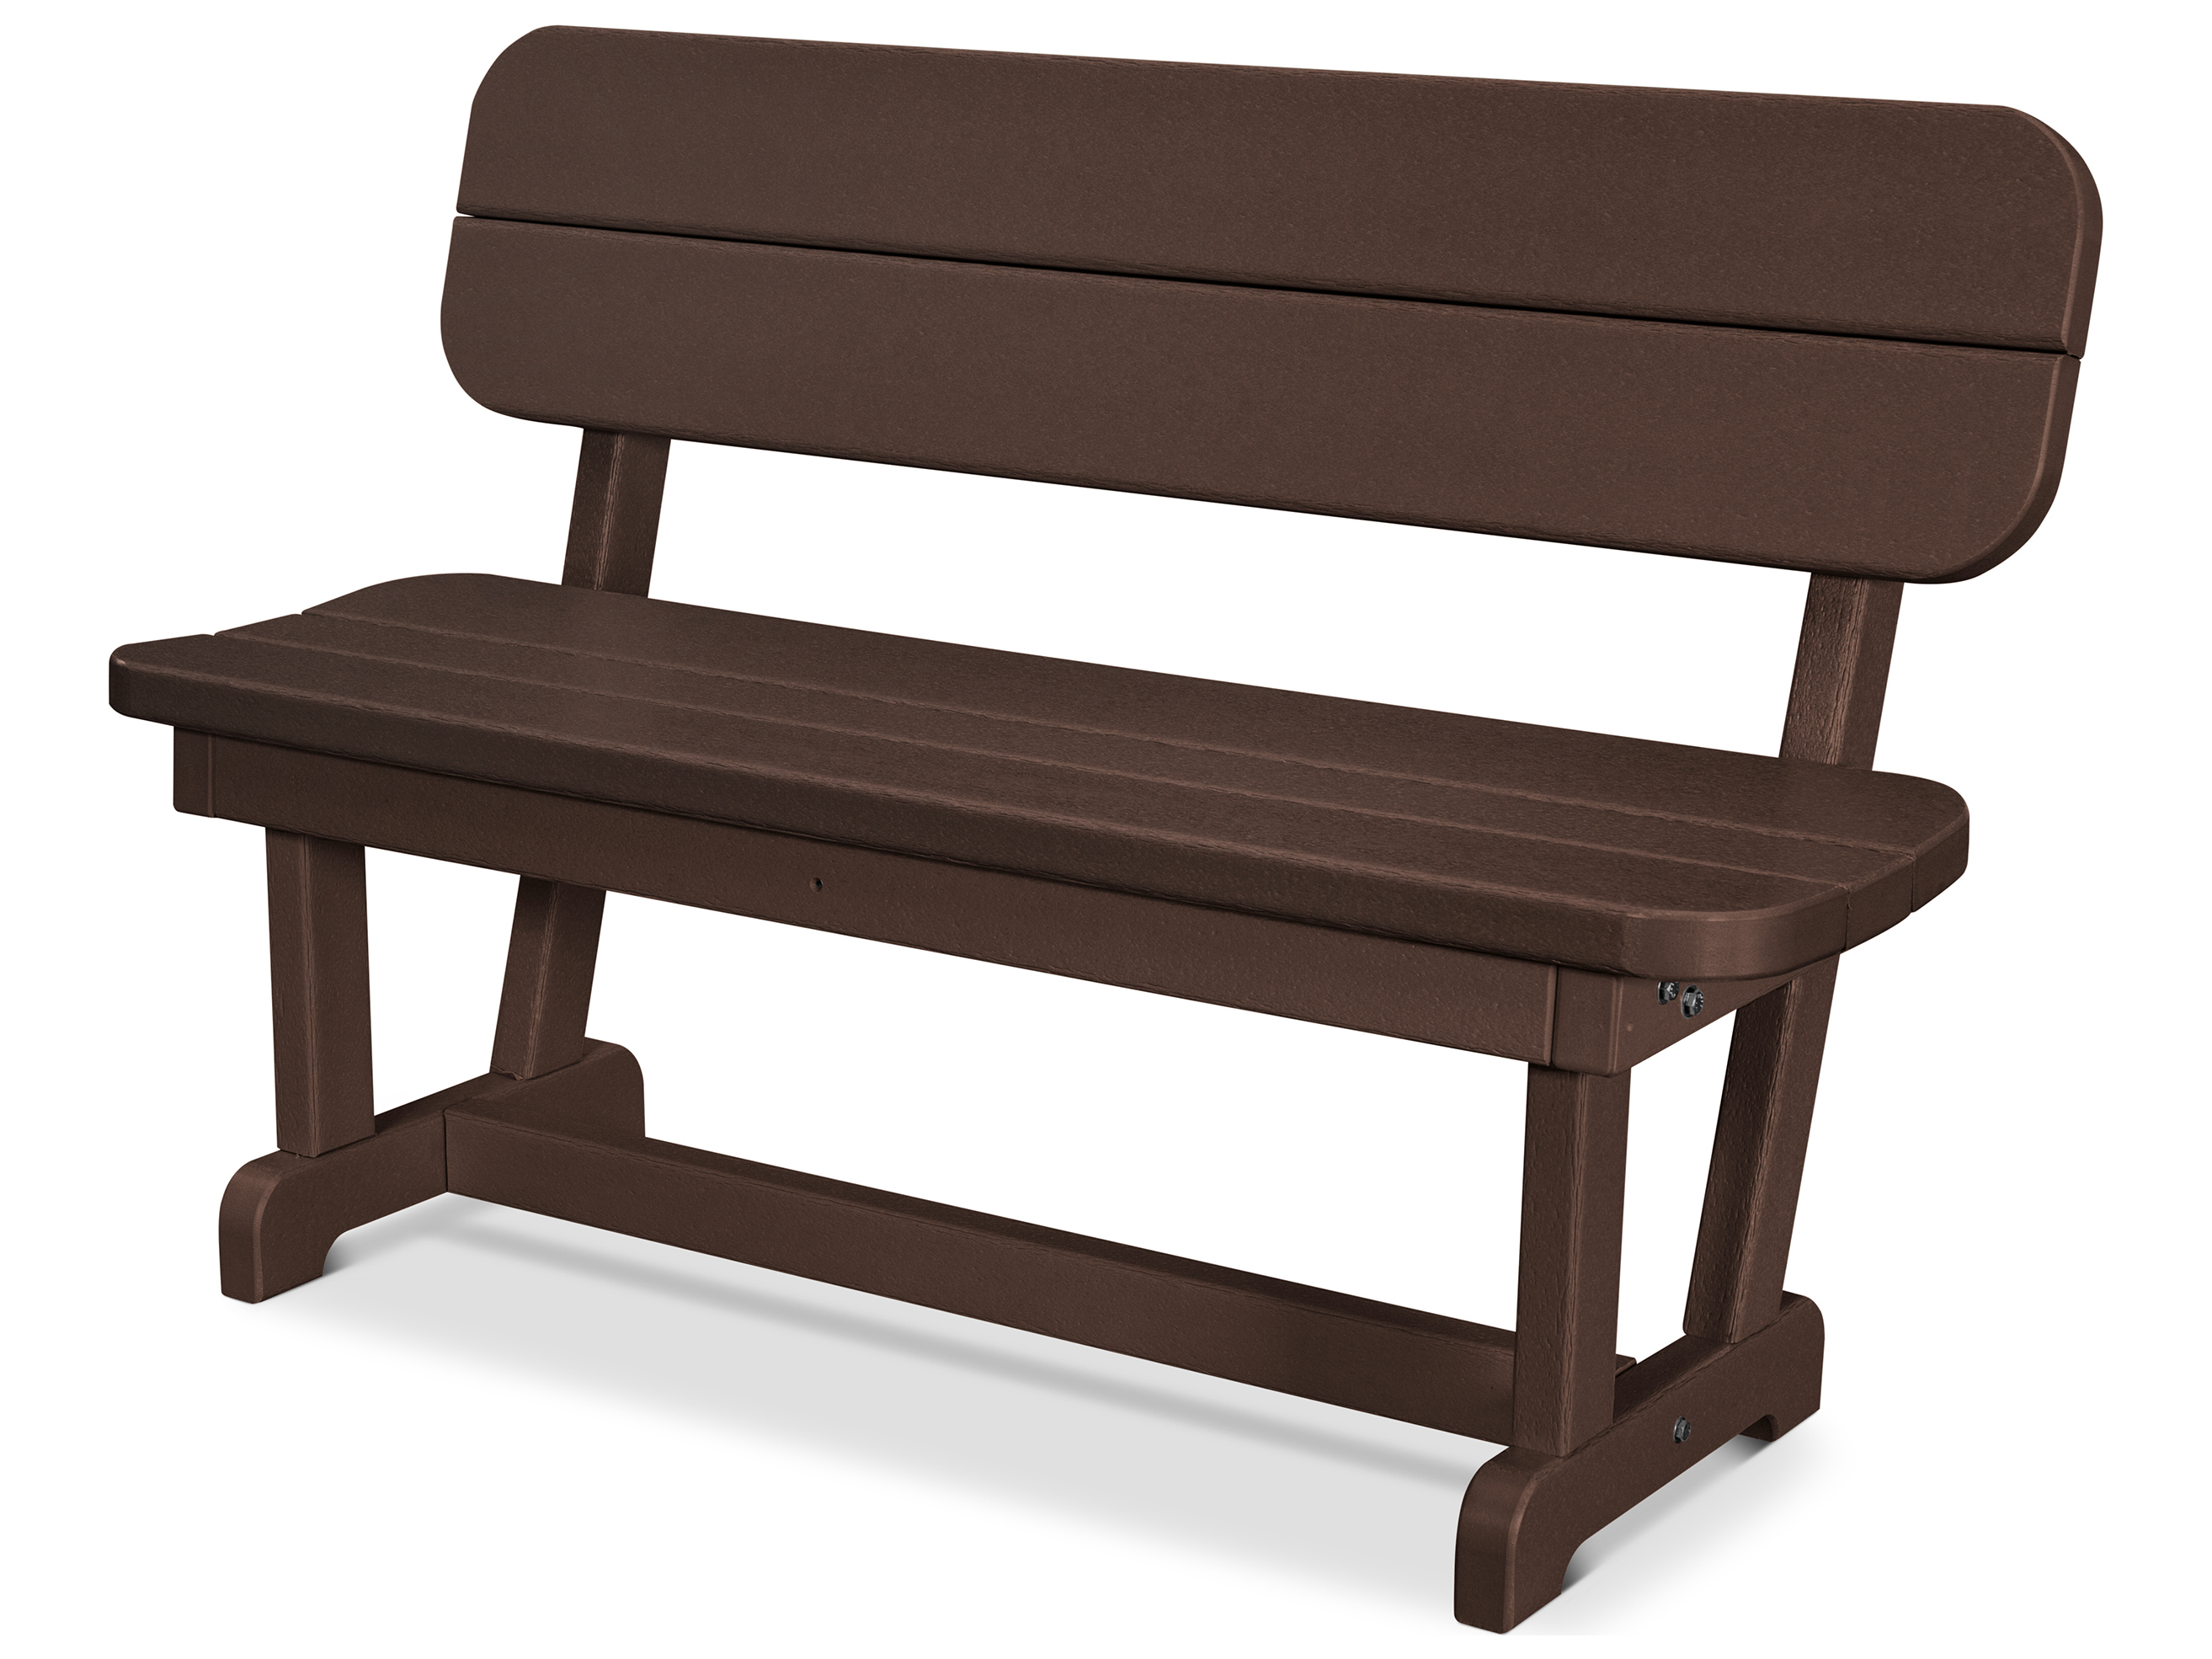 Polywood park recycled plastic 48 bench pb48 Polywood bench